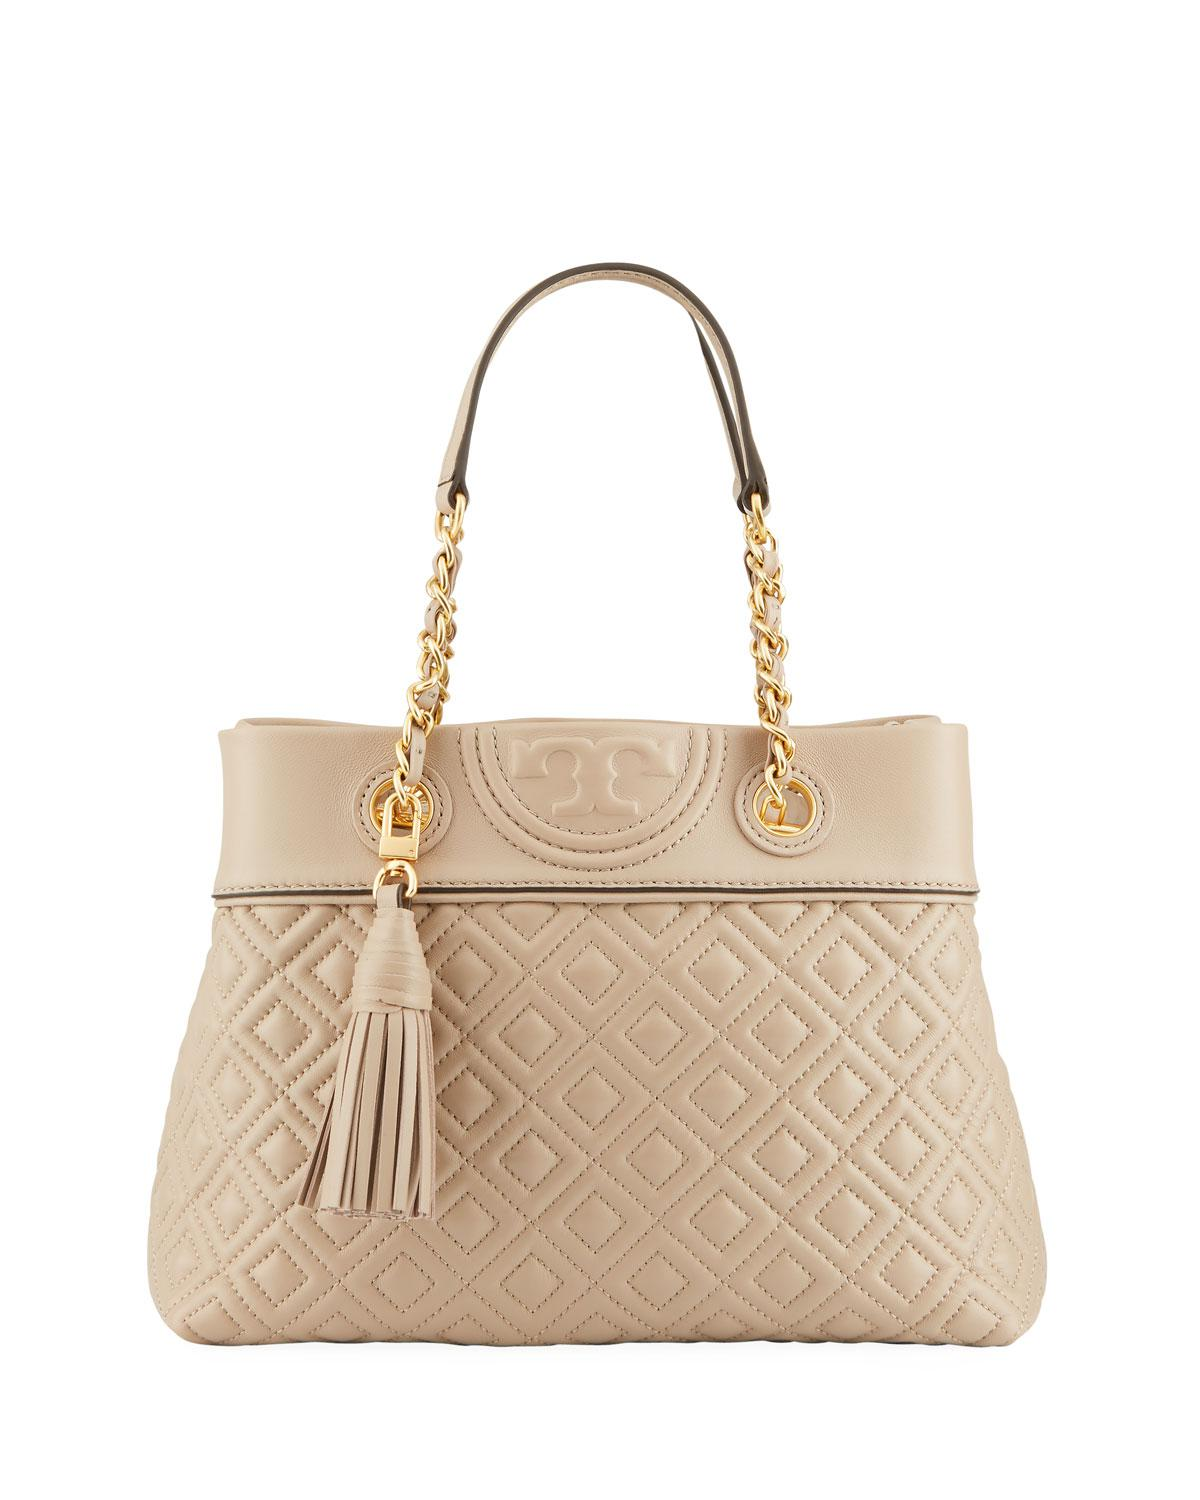 f5d5190c4516 Lyst - Tory Burch Fleming Small Quilted Leather Tote Bag in Natural